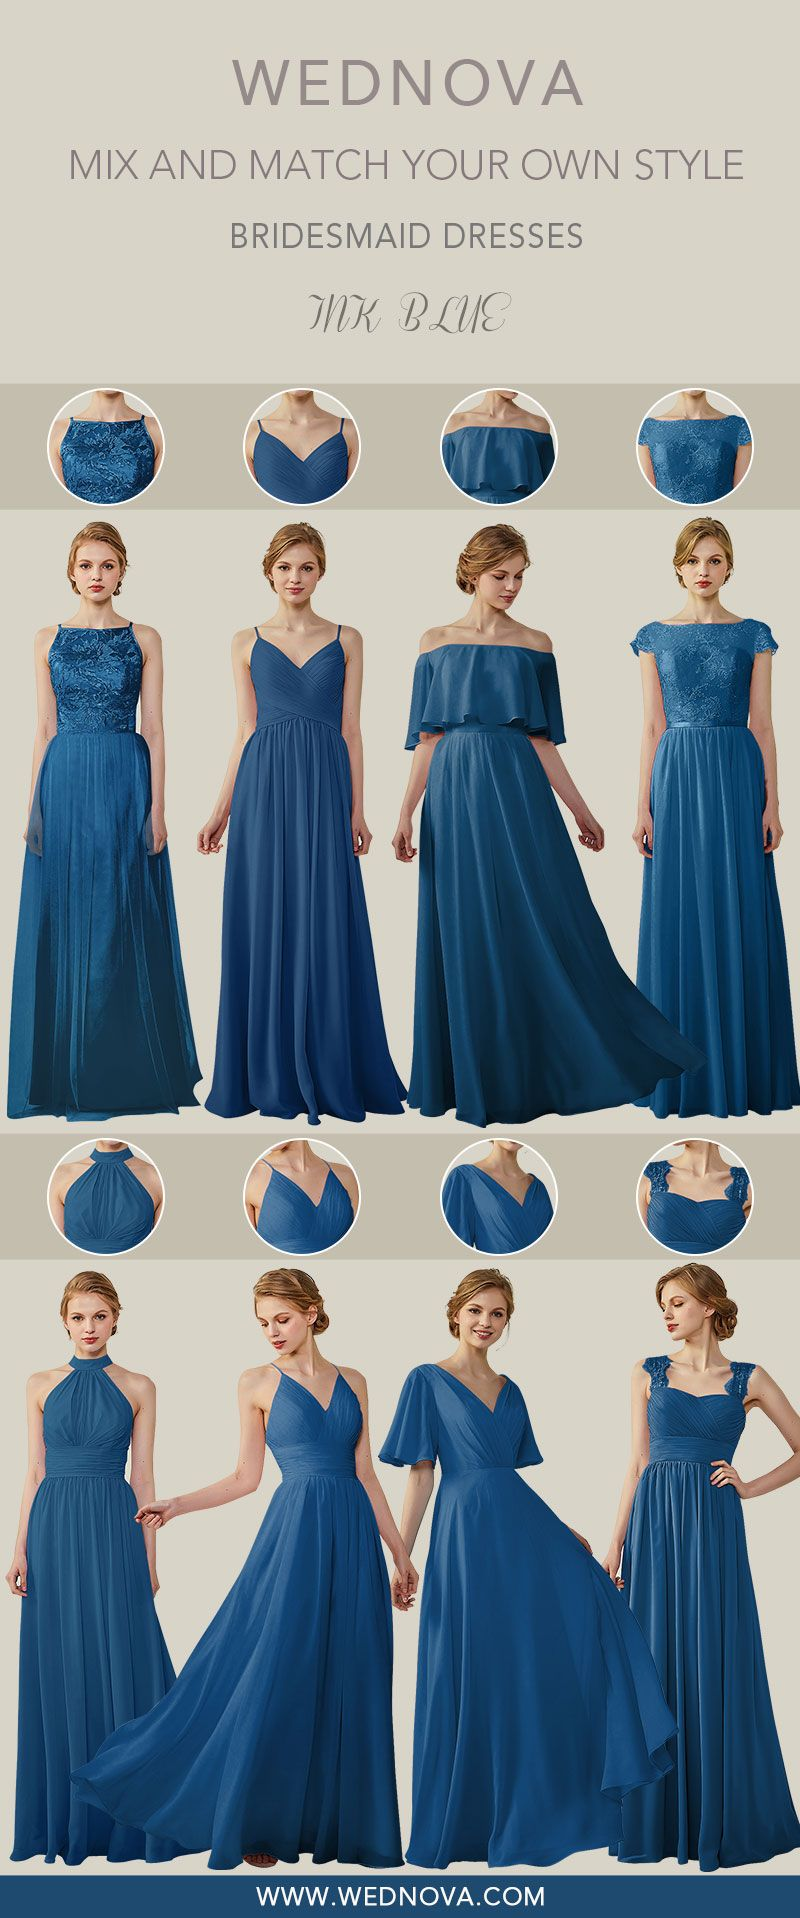 New color bridesmaid dresses long chiffon dress ink blue all styles